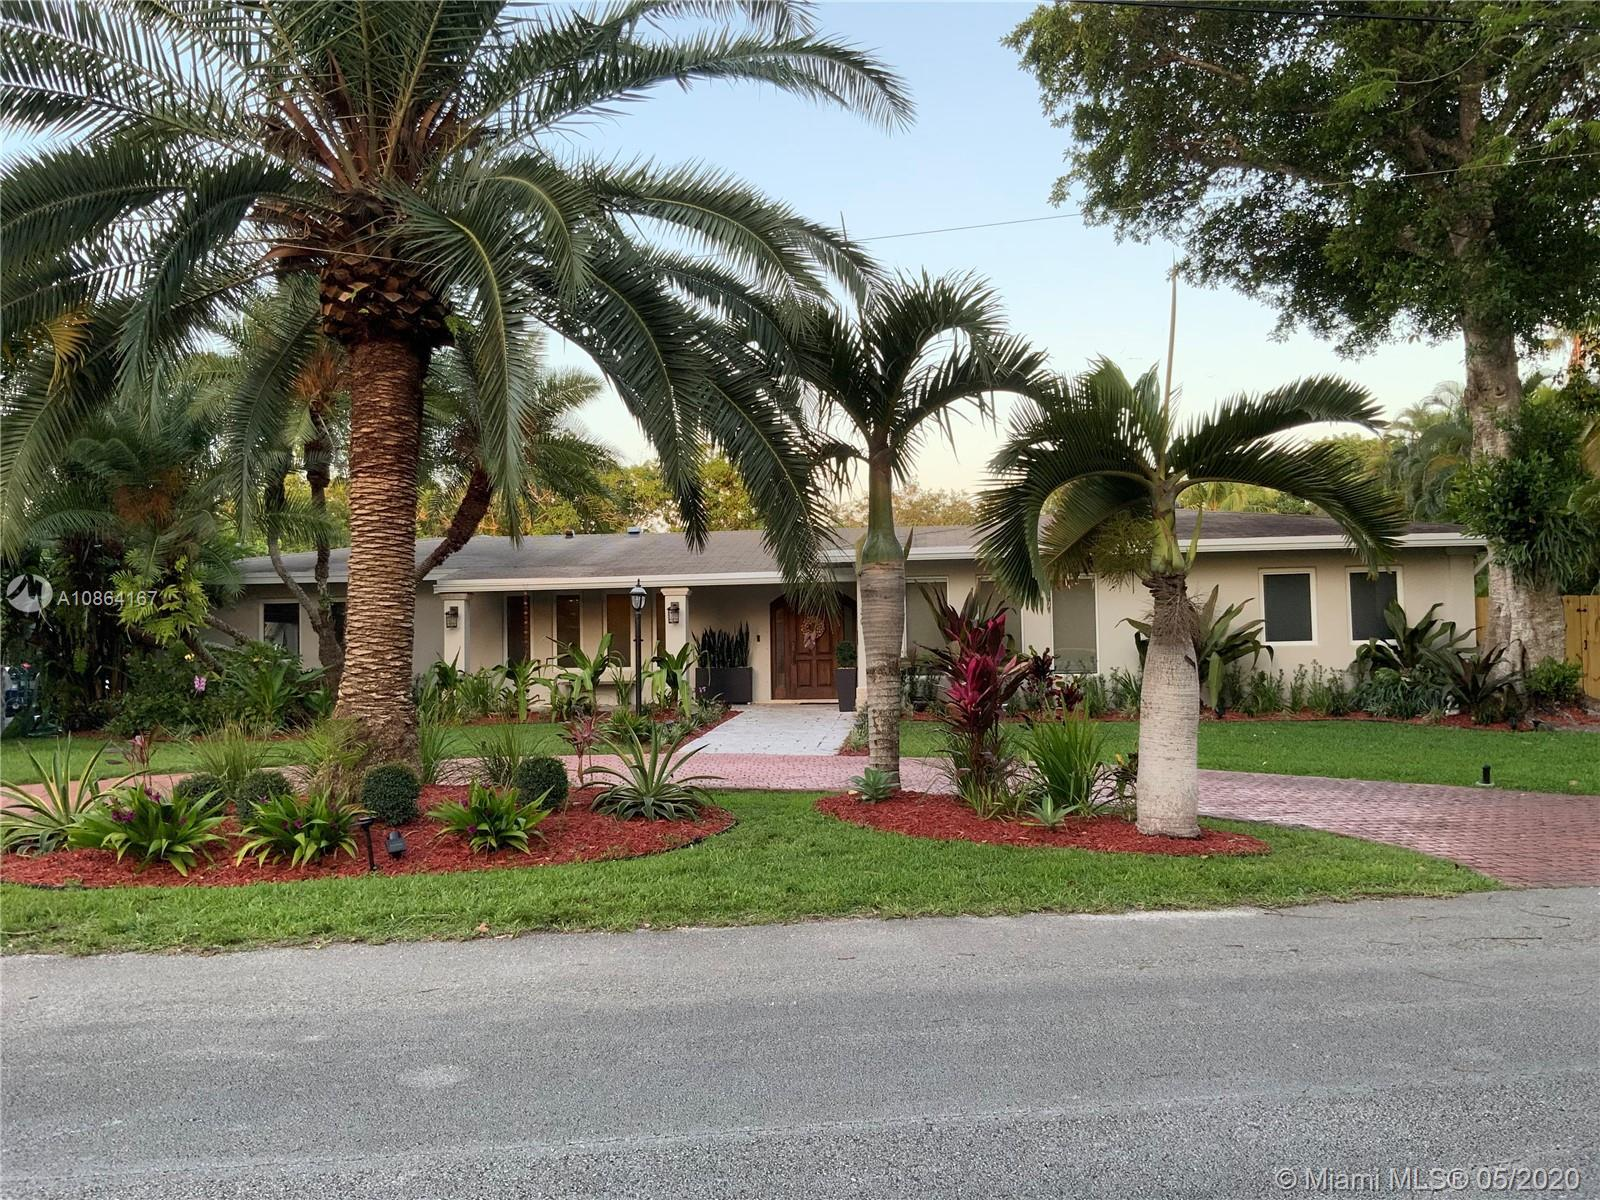 BEAUTIFUL, SPACIOUS, WATERFRONT, FAMILY POOL HOME, LOCATED IN THE HEART OF PINECREST, ON NO THRU TRA